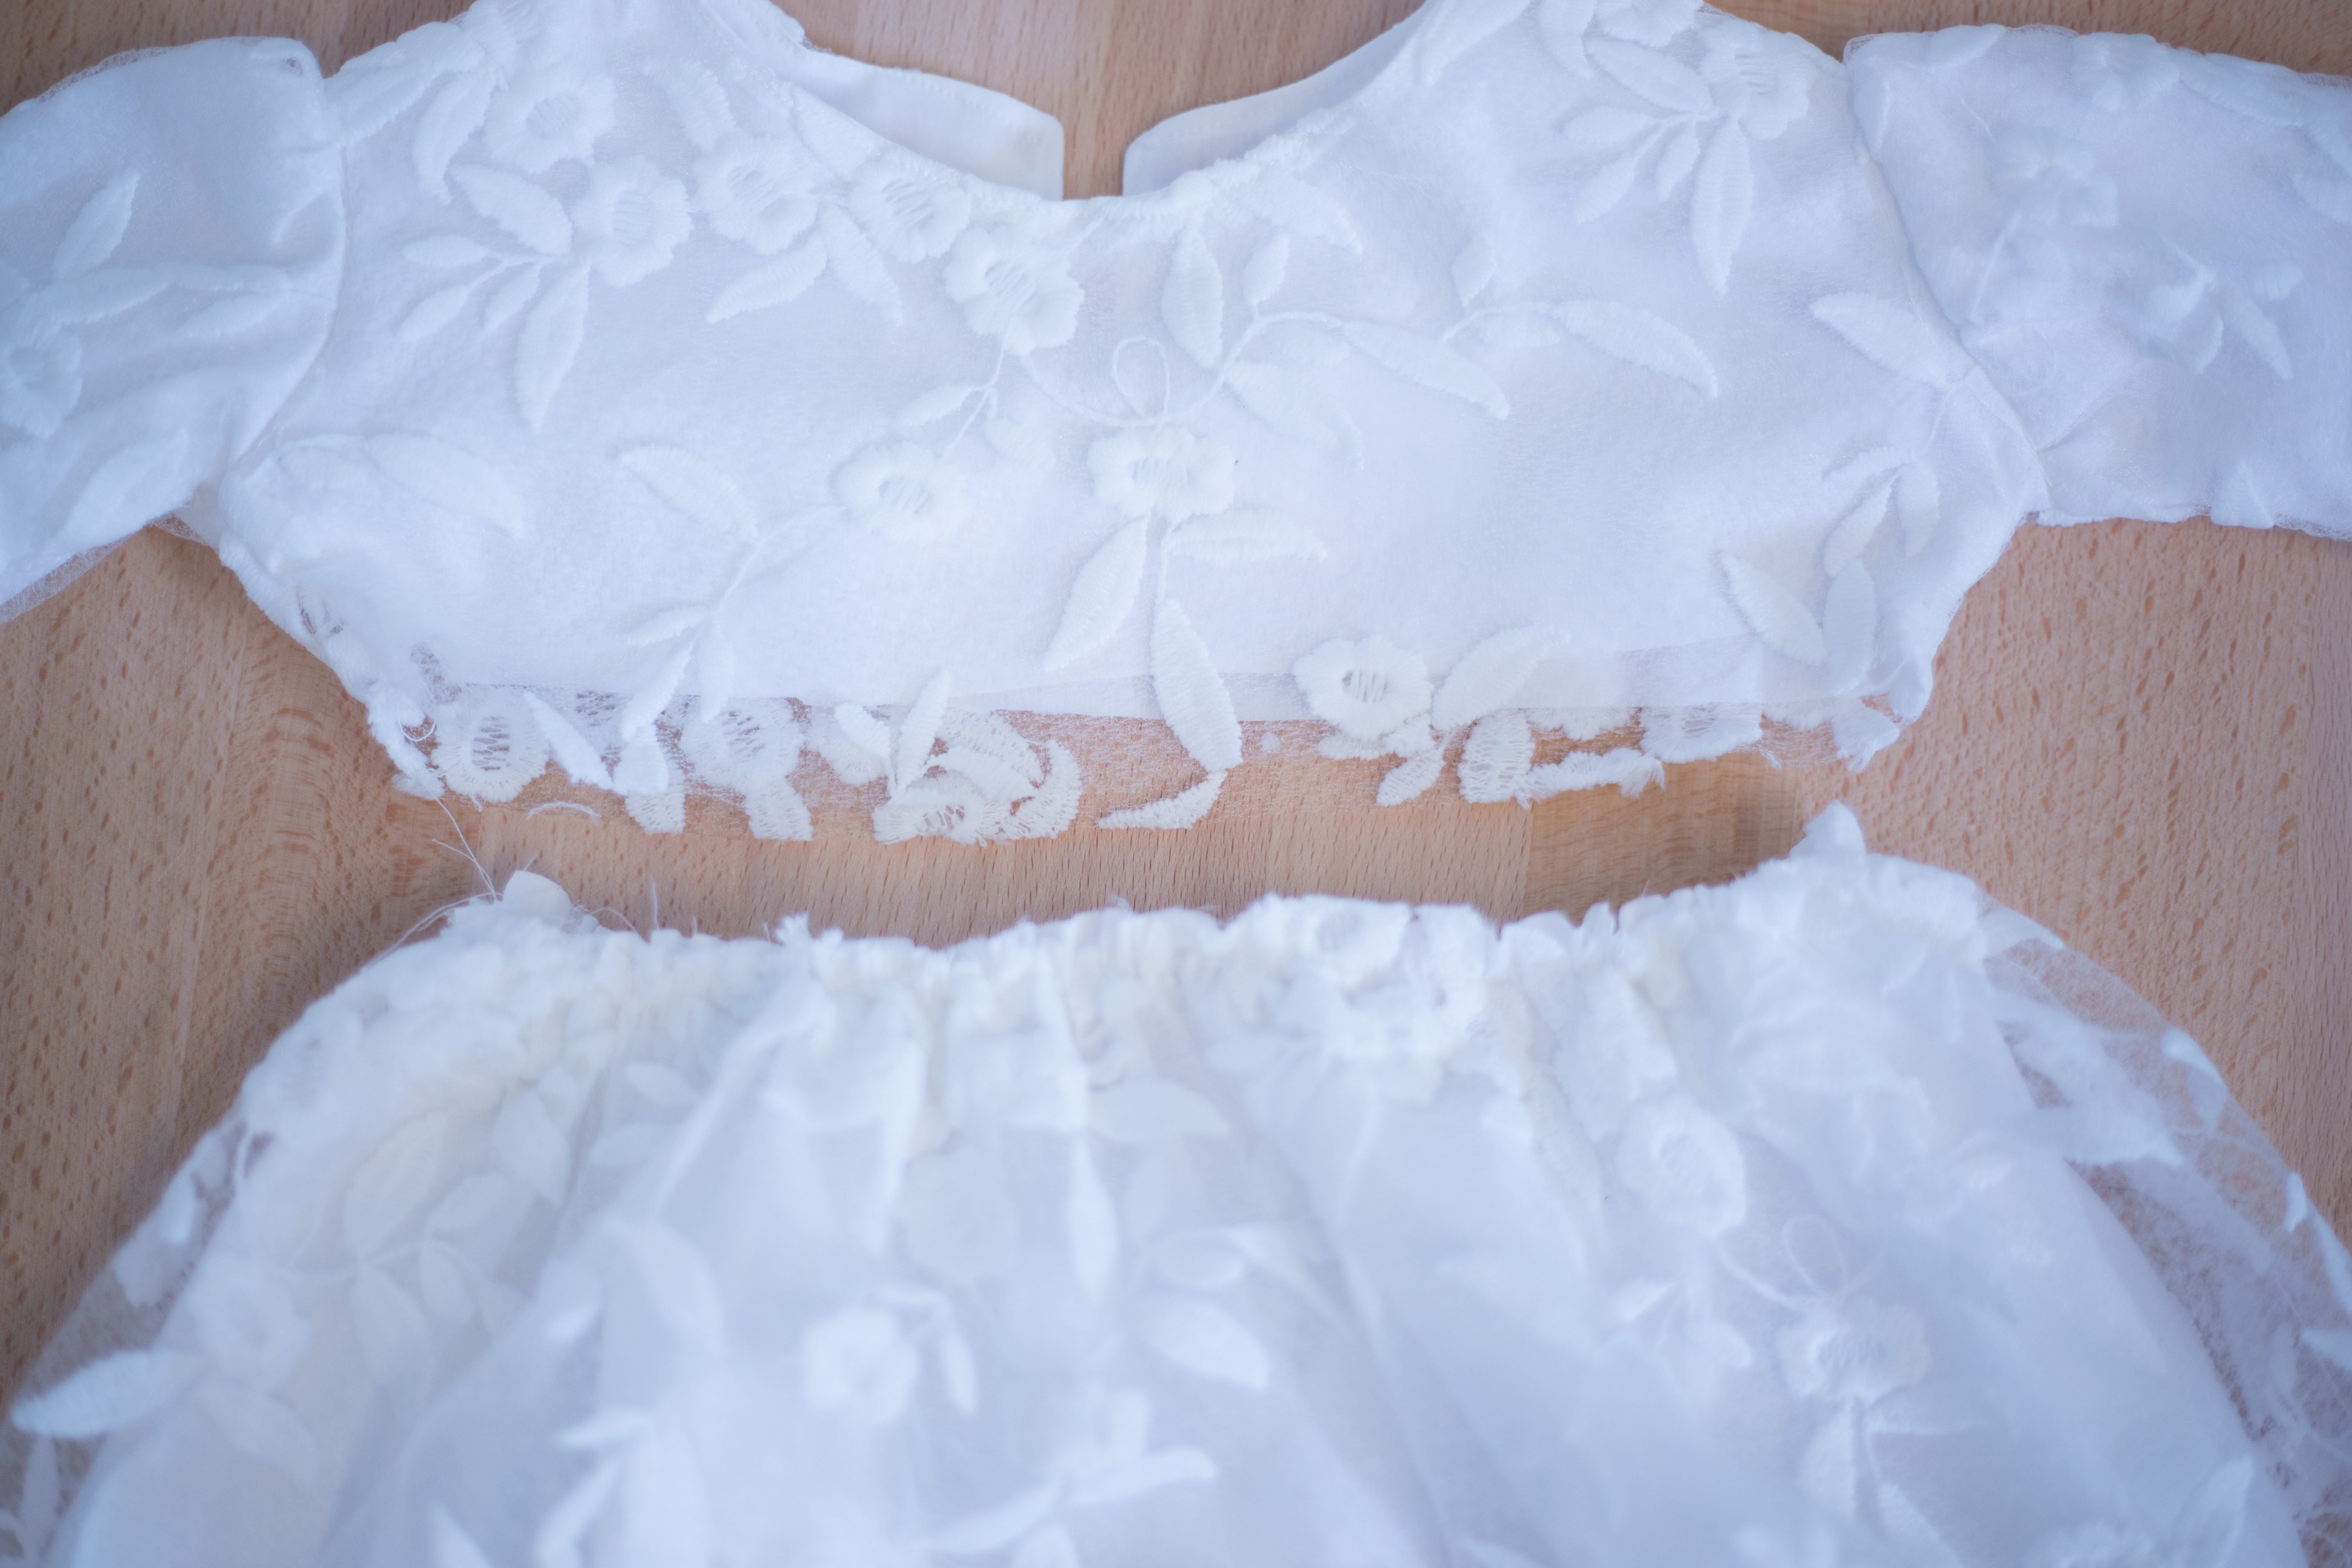 Lace Christening Gown Or Blessing Dress Live Free Creative Co